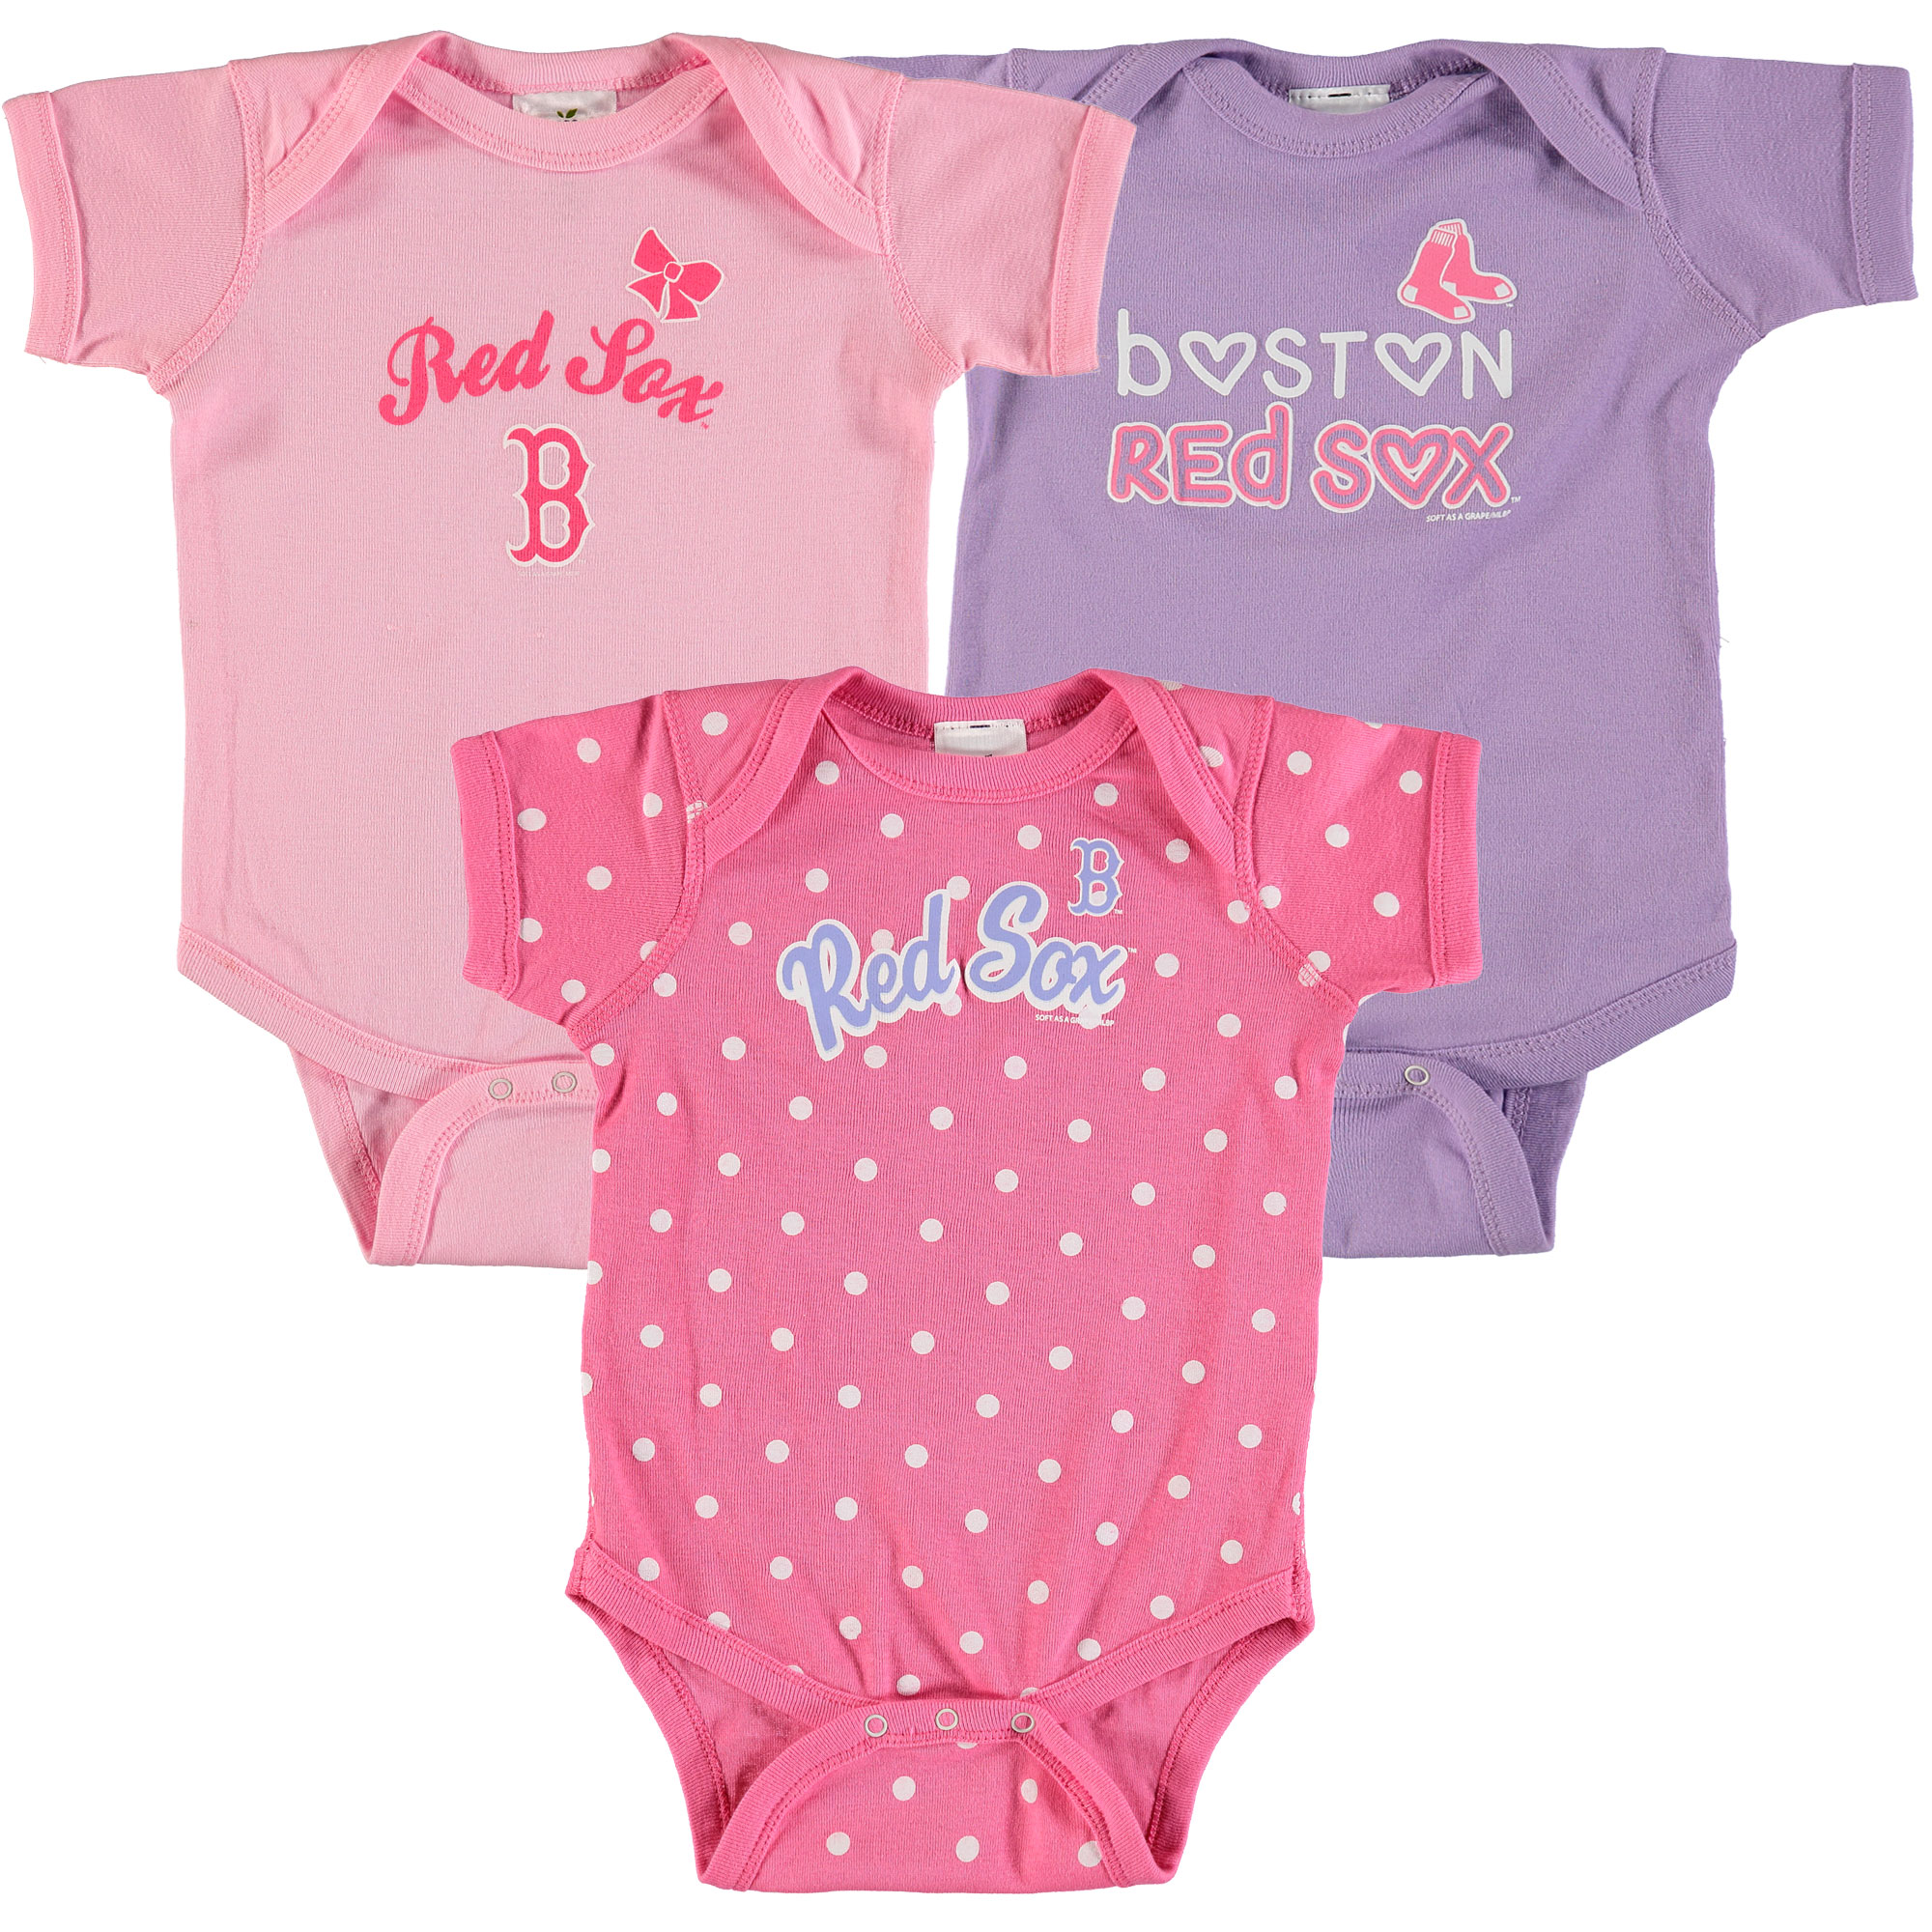 Boston Red Sox Soft as a Grape Girls Infant 3-Pack Rookie Bodysuit Set - Pink/Purple